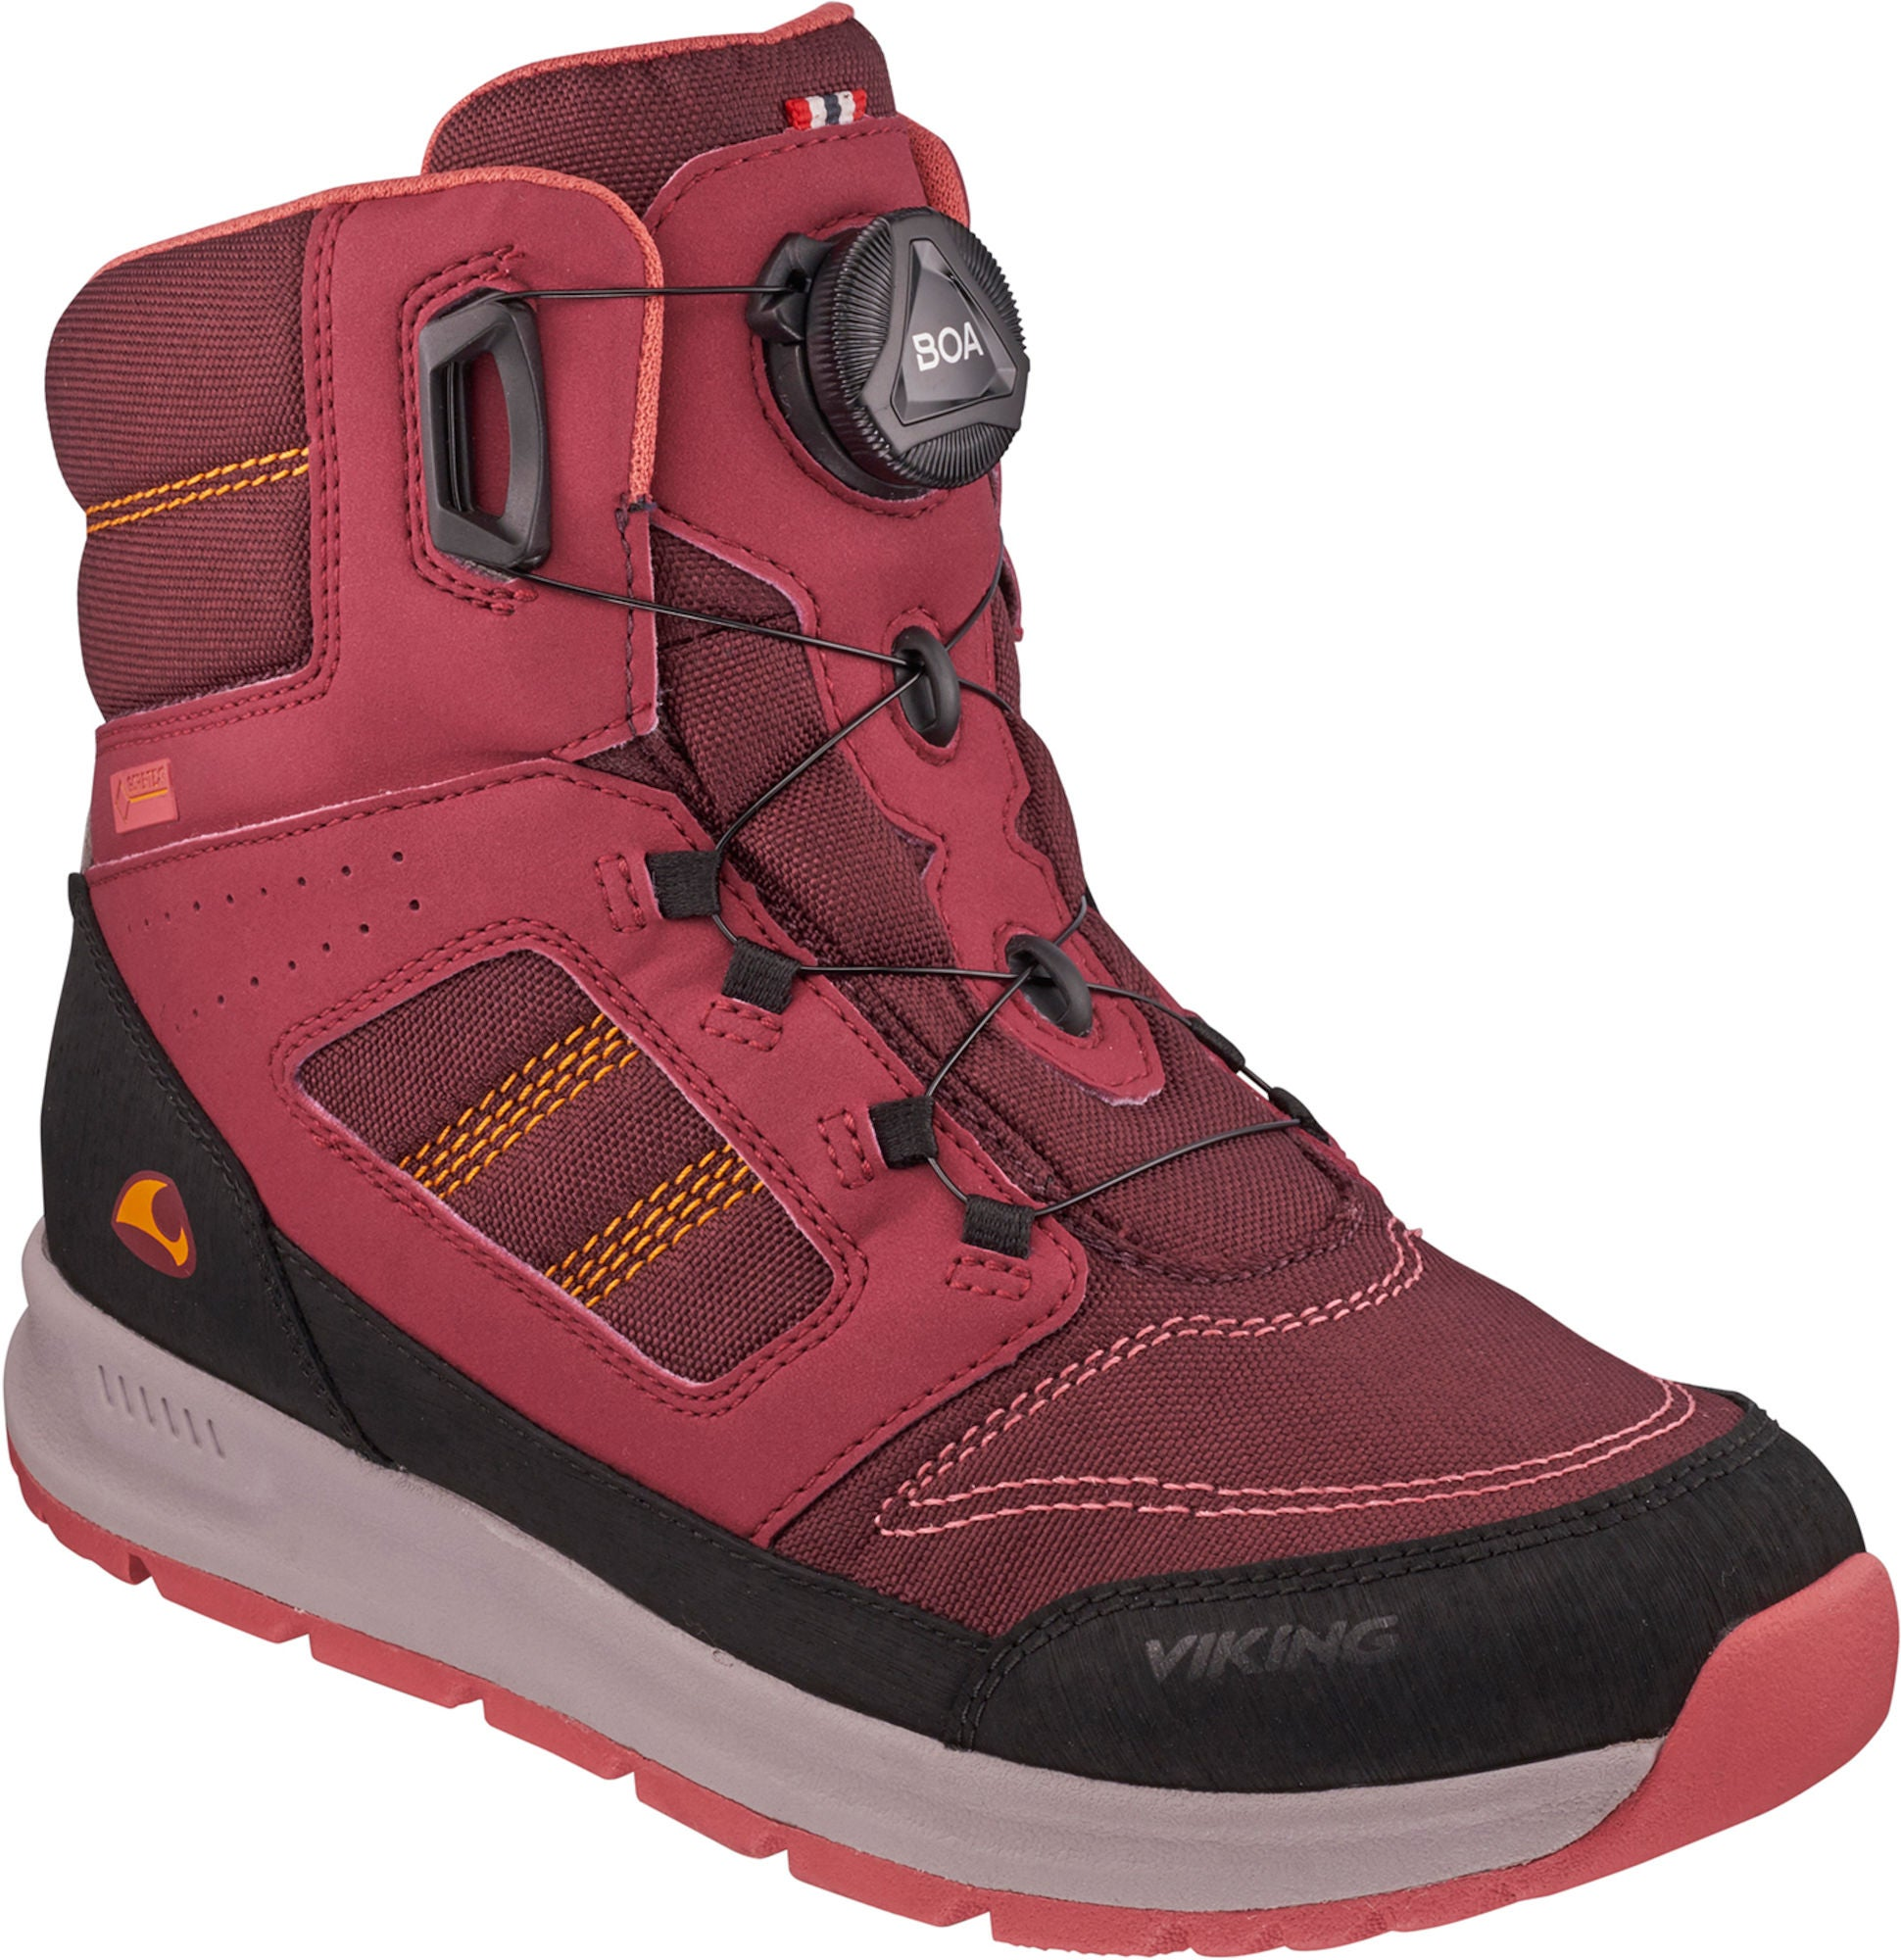 Viking Tryvann Boa GTX Vintersko, Dark Red/Wine 37